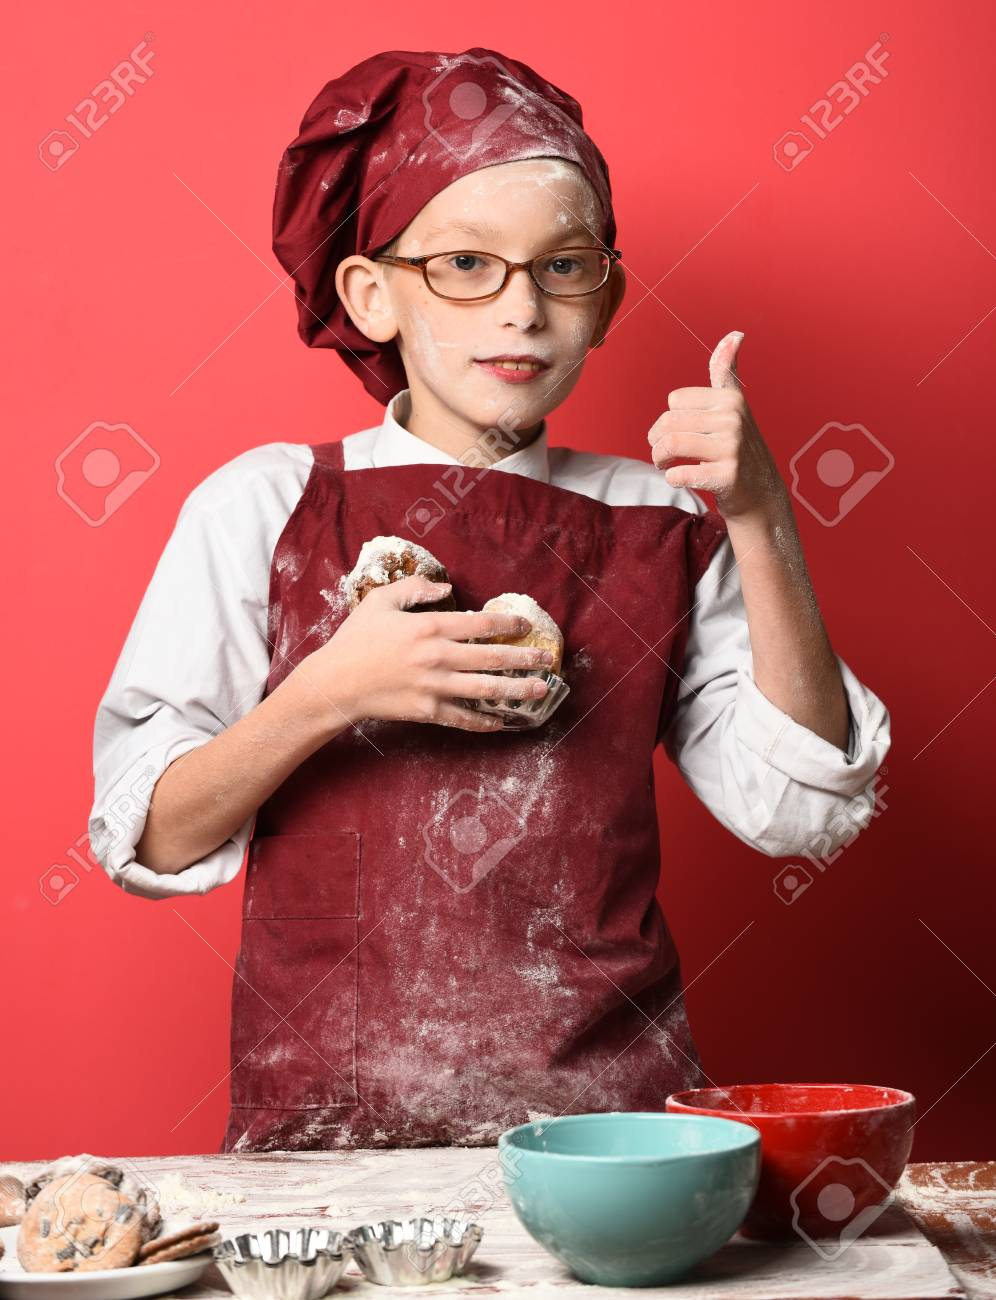 Young Boy Cute Cook Chef In Uniform And Hat On Stained Face Flour 996x1300